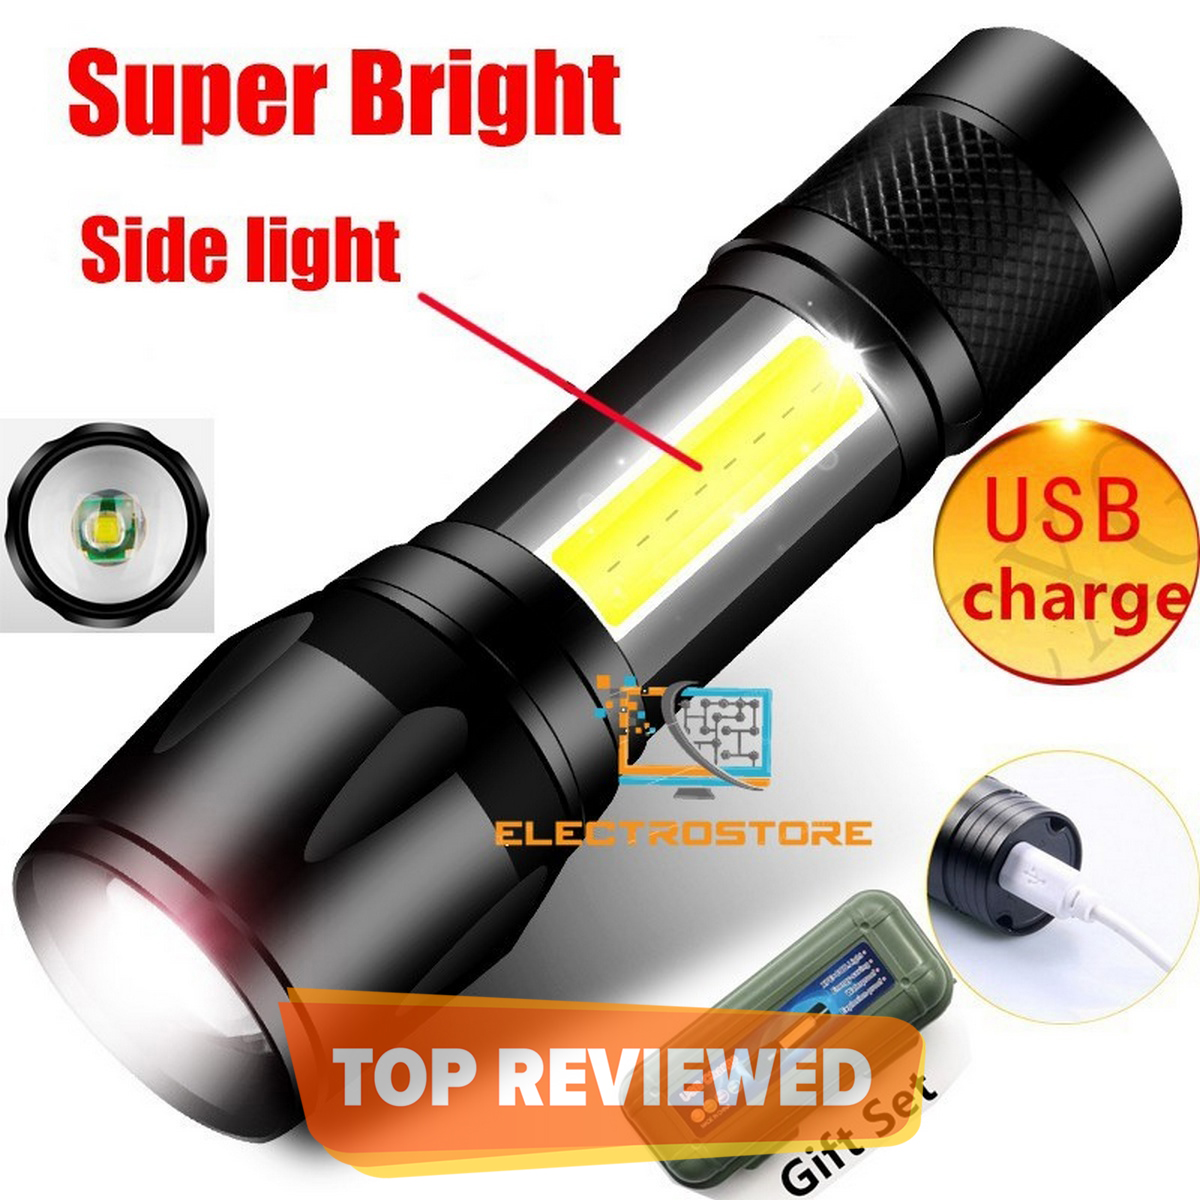 Zoomable Rechargeable LED Torch - Micro USB Charging with Cable and Case - Stainless Steel Design